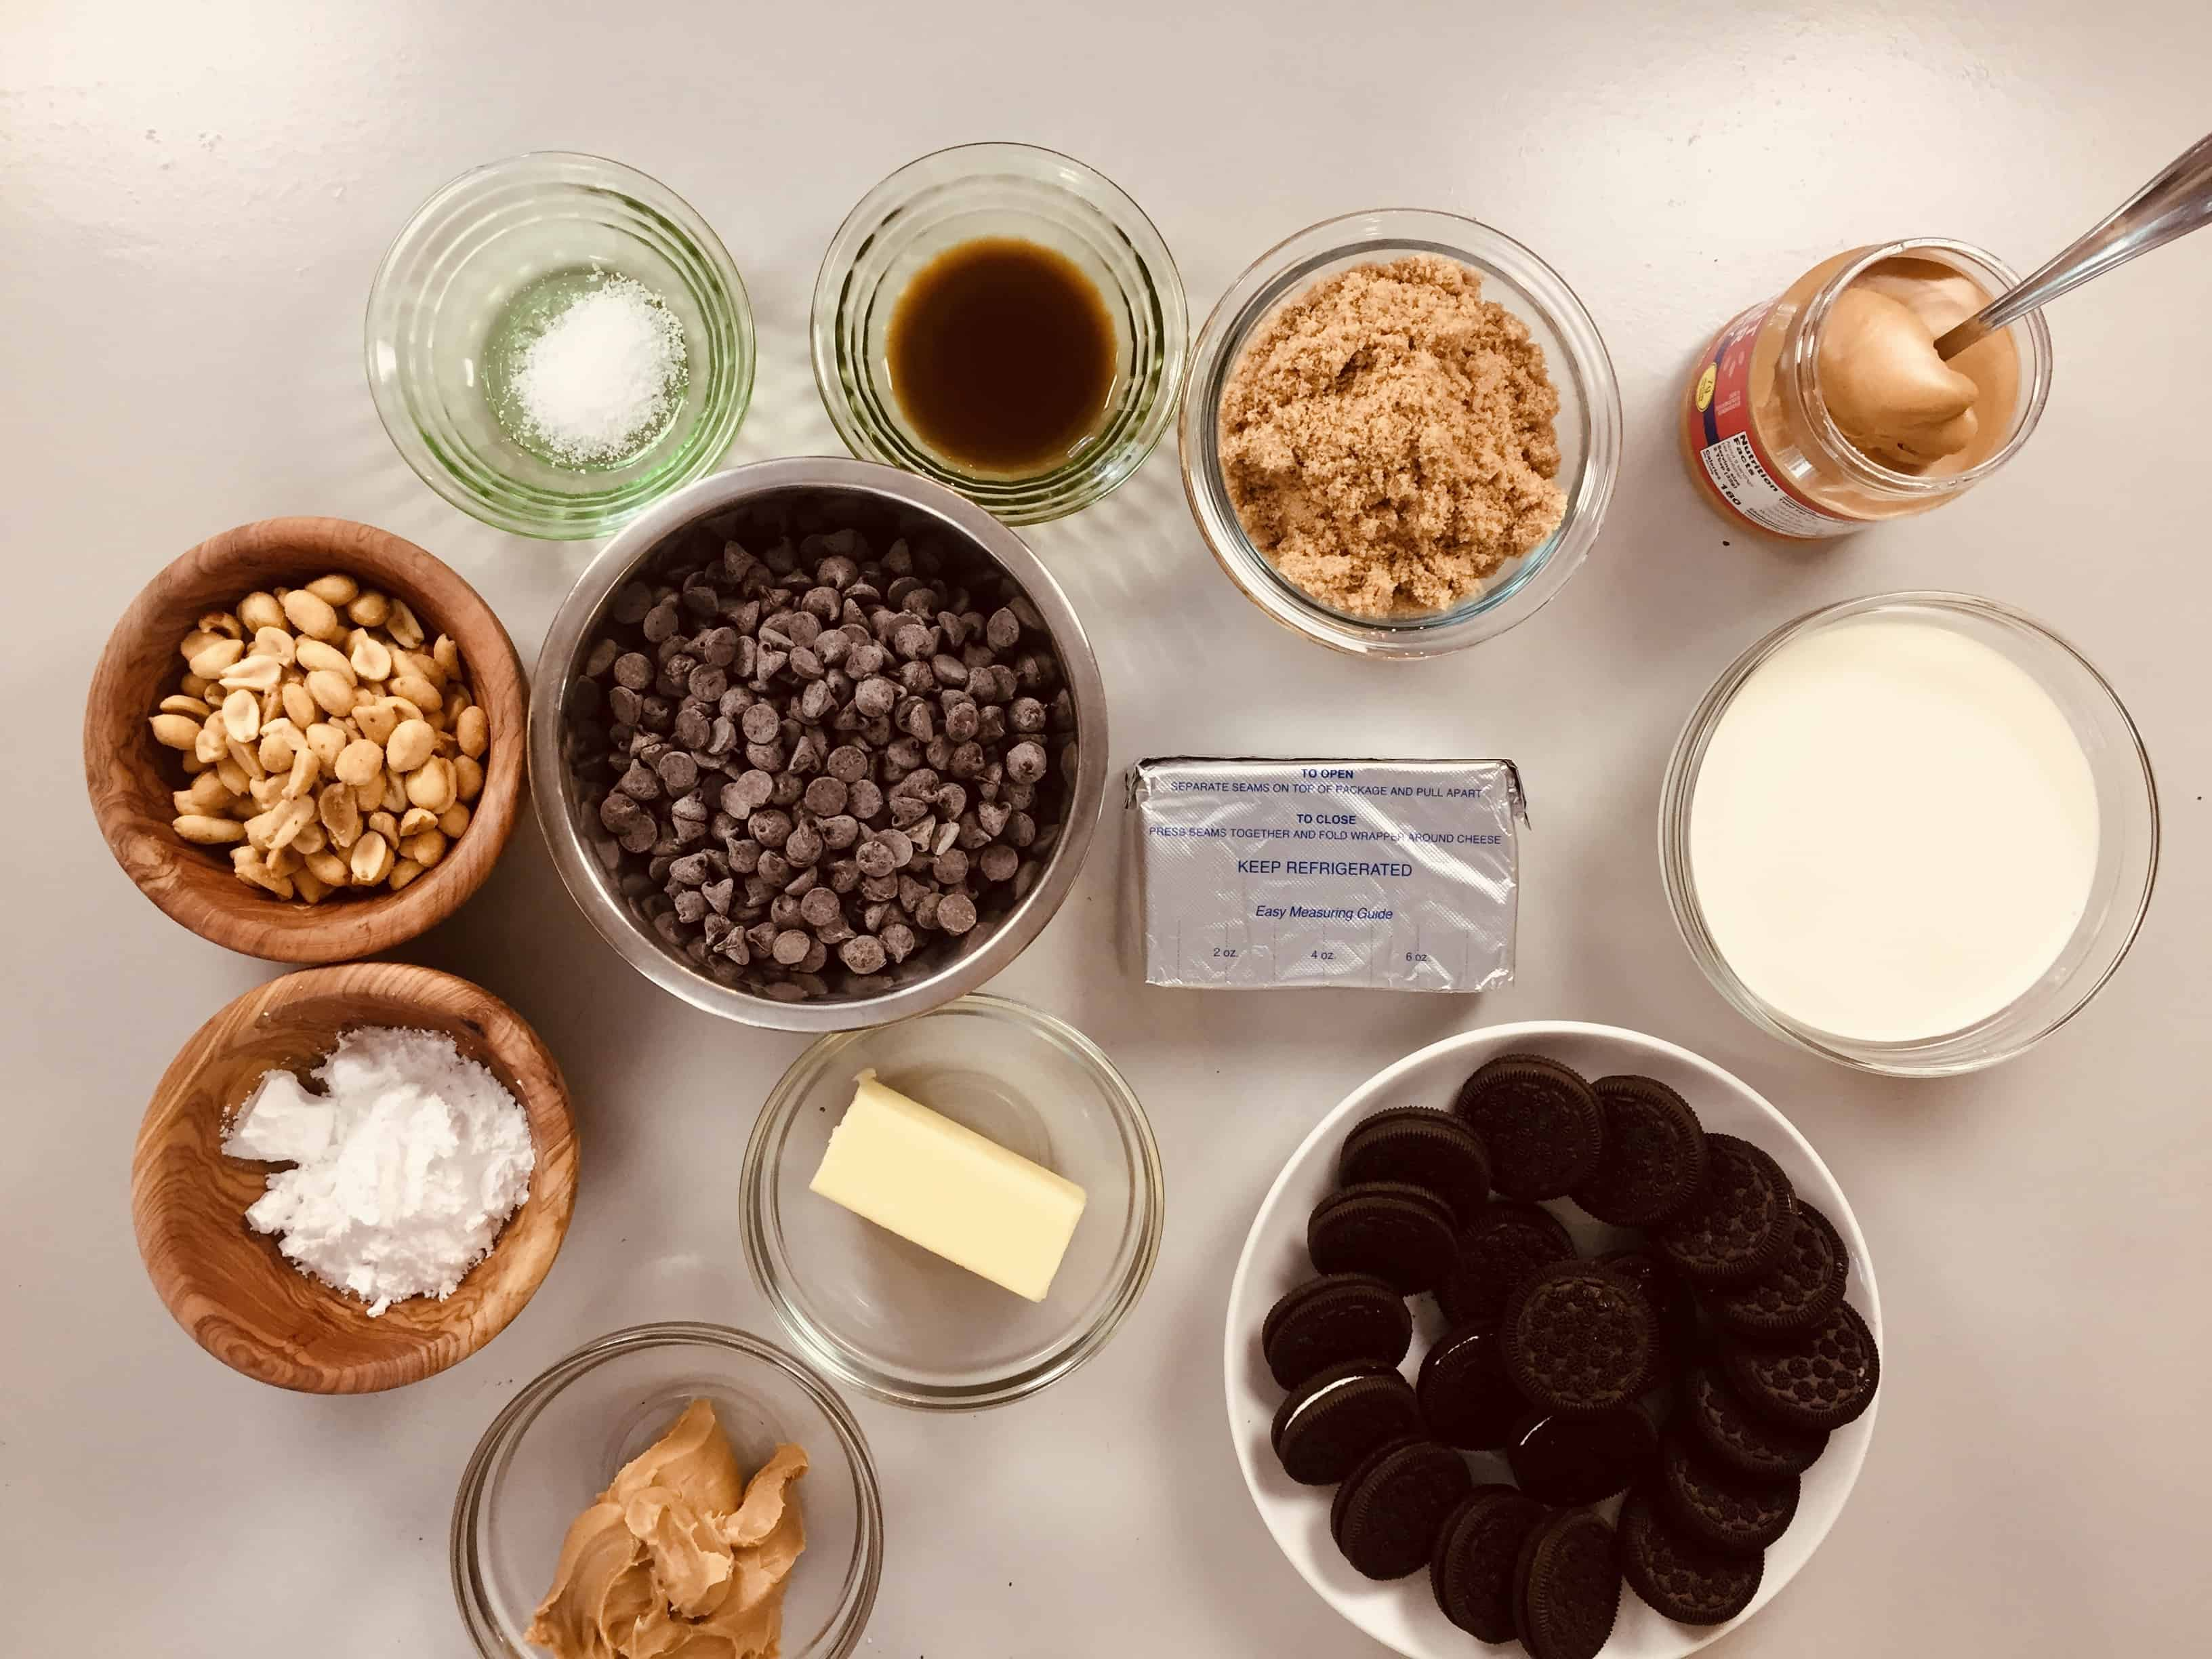 My mis en place for the ultimate chocolate peanut butter pie